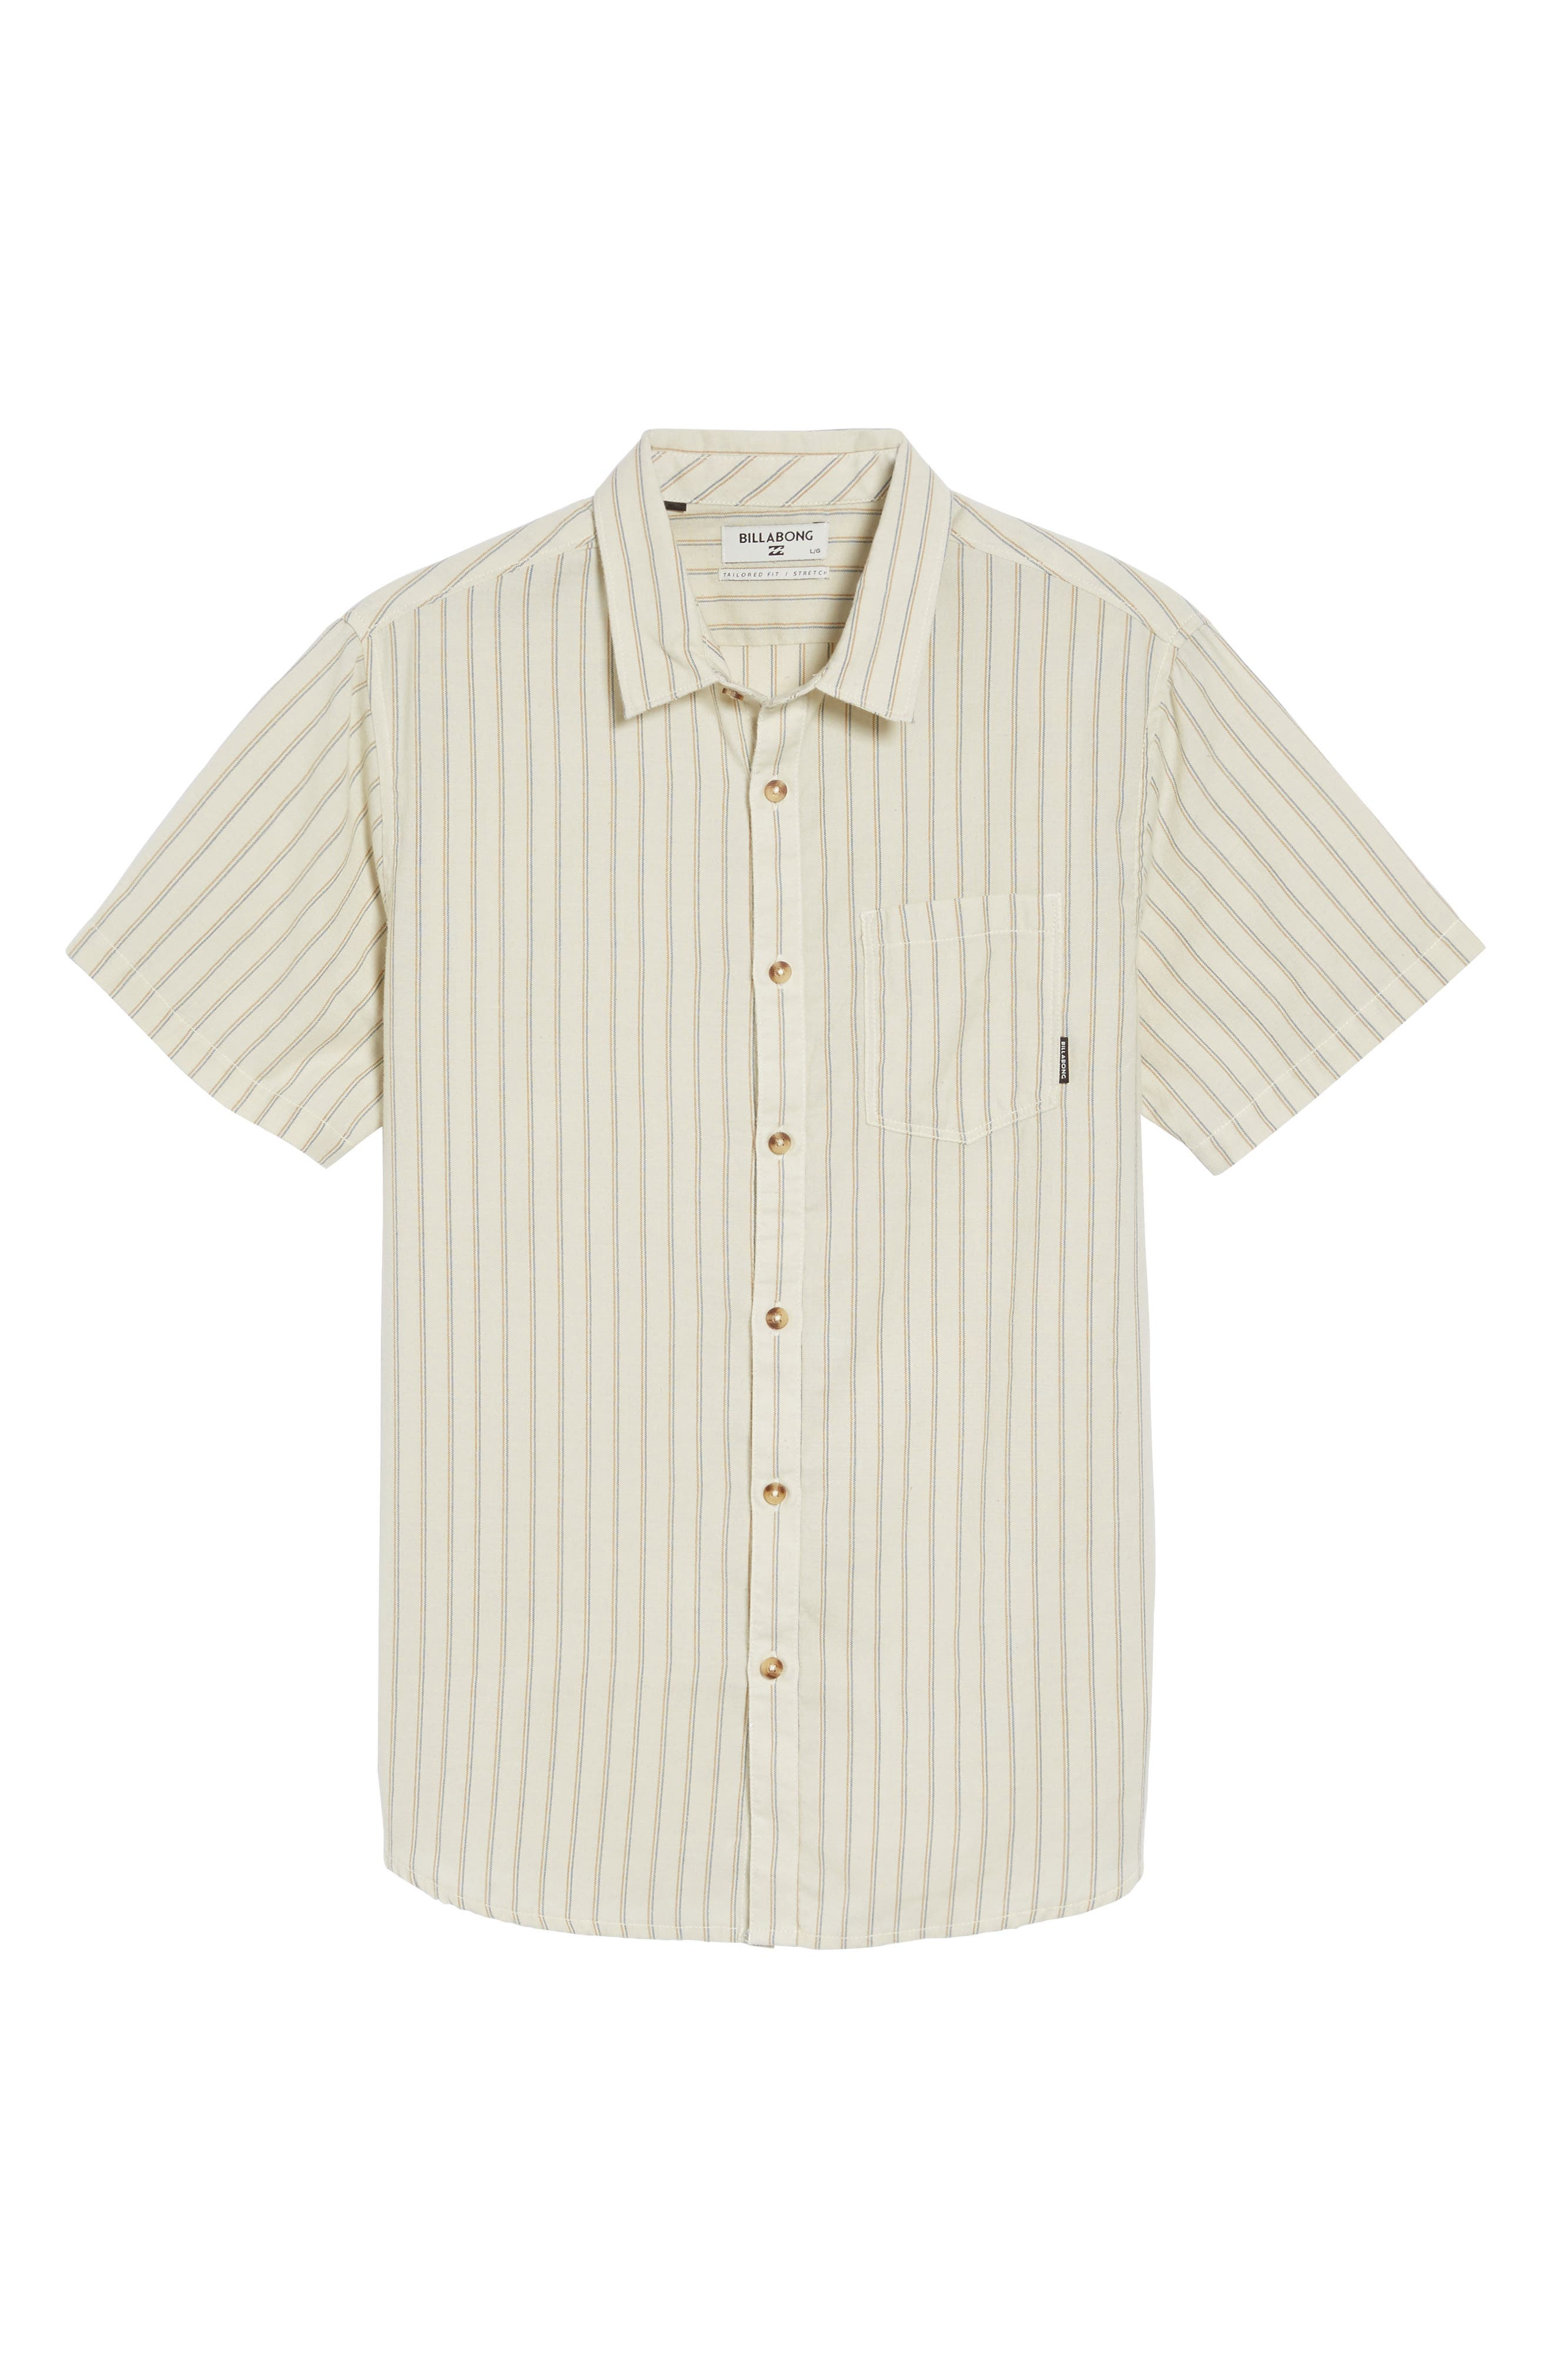 Kelso Tailored Fit Stripe Shirt,                             Alternate thumbnail 6, color,                             061